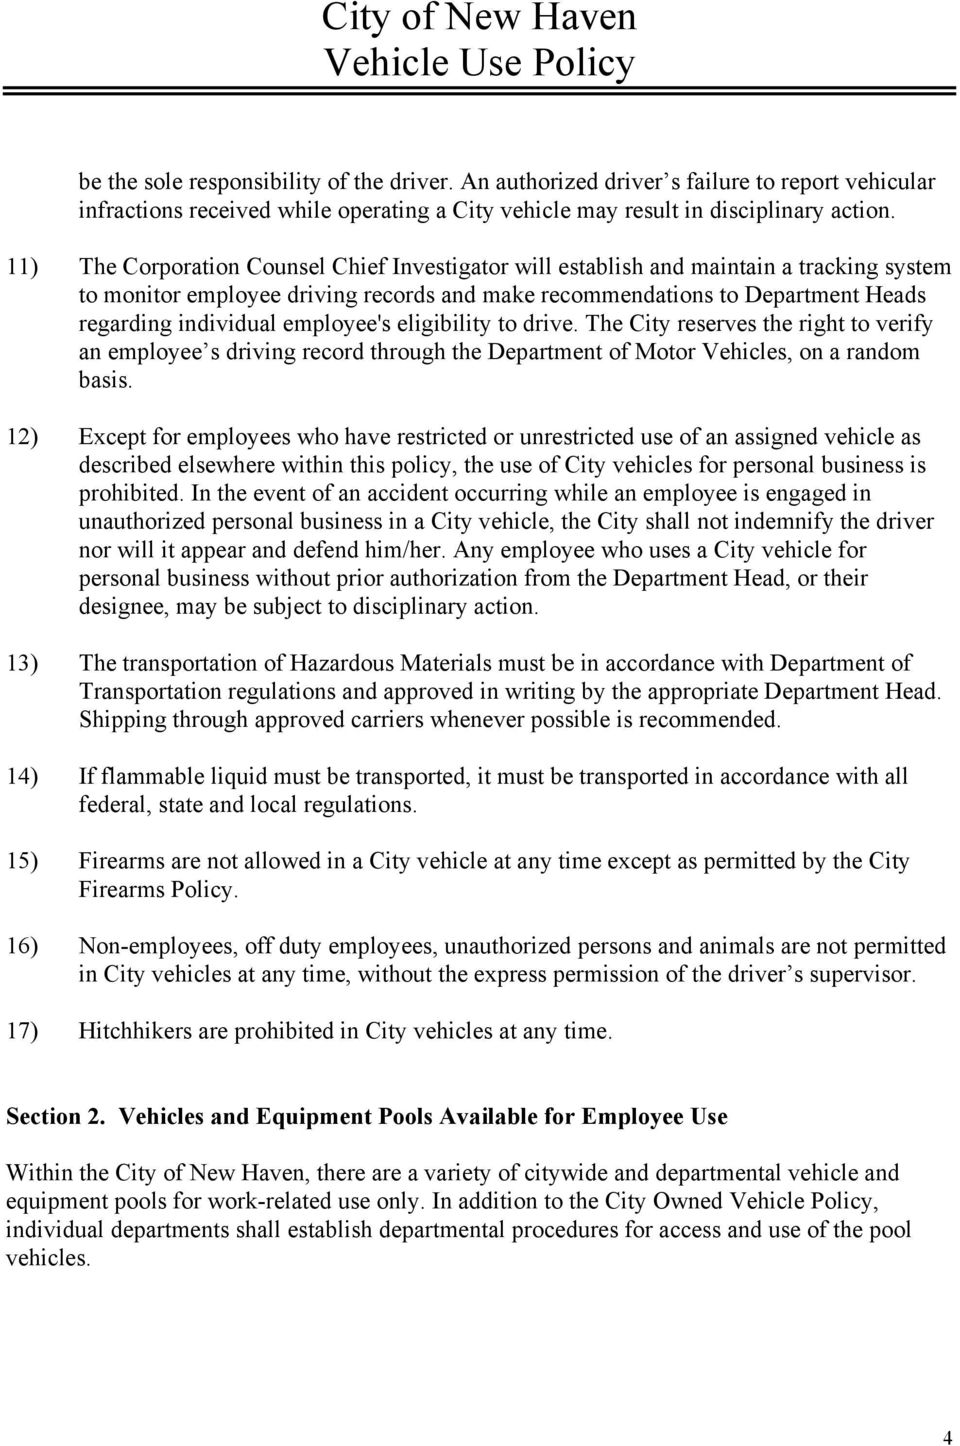 employee's eligibility to drive. The City reserves the right to verify an employee s driving record through the Department of Motor Vehicles, on a random basis.